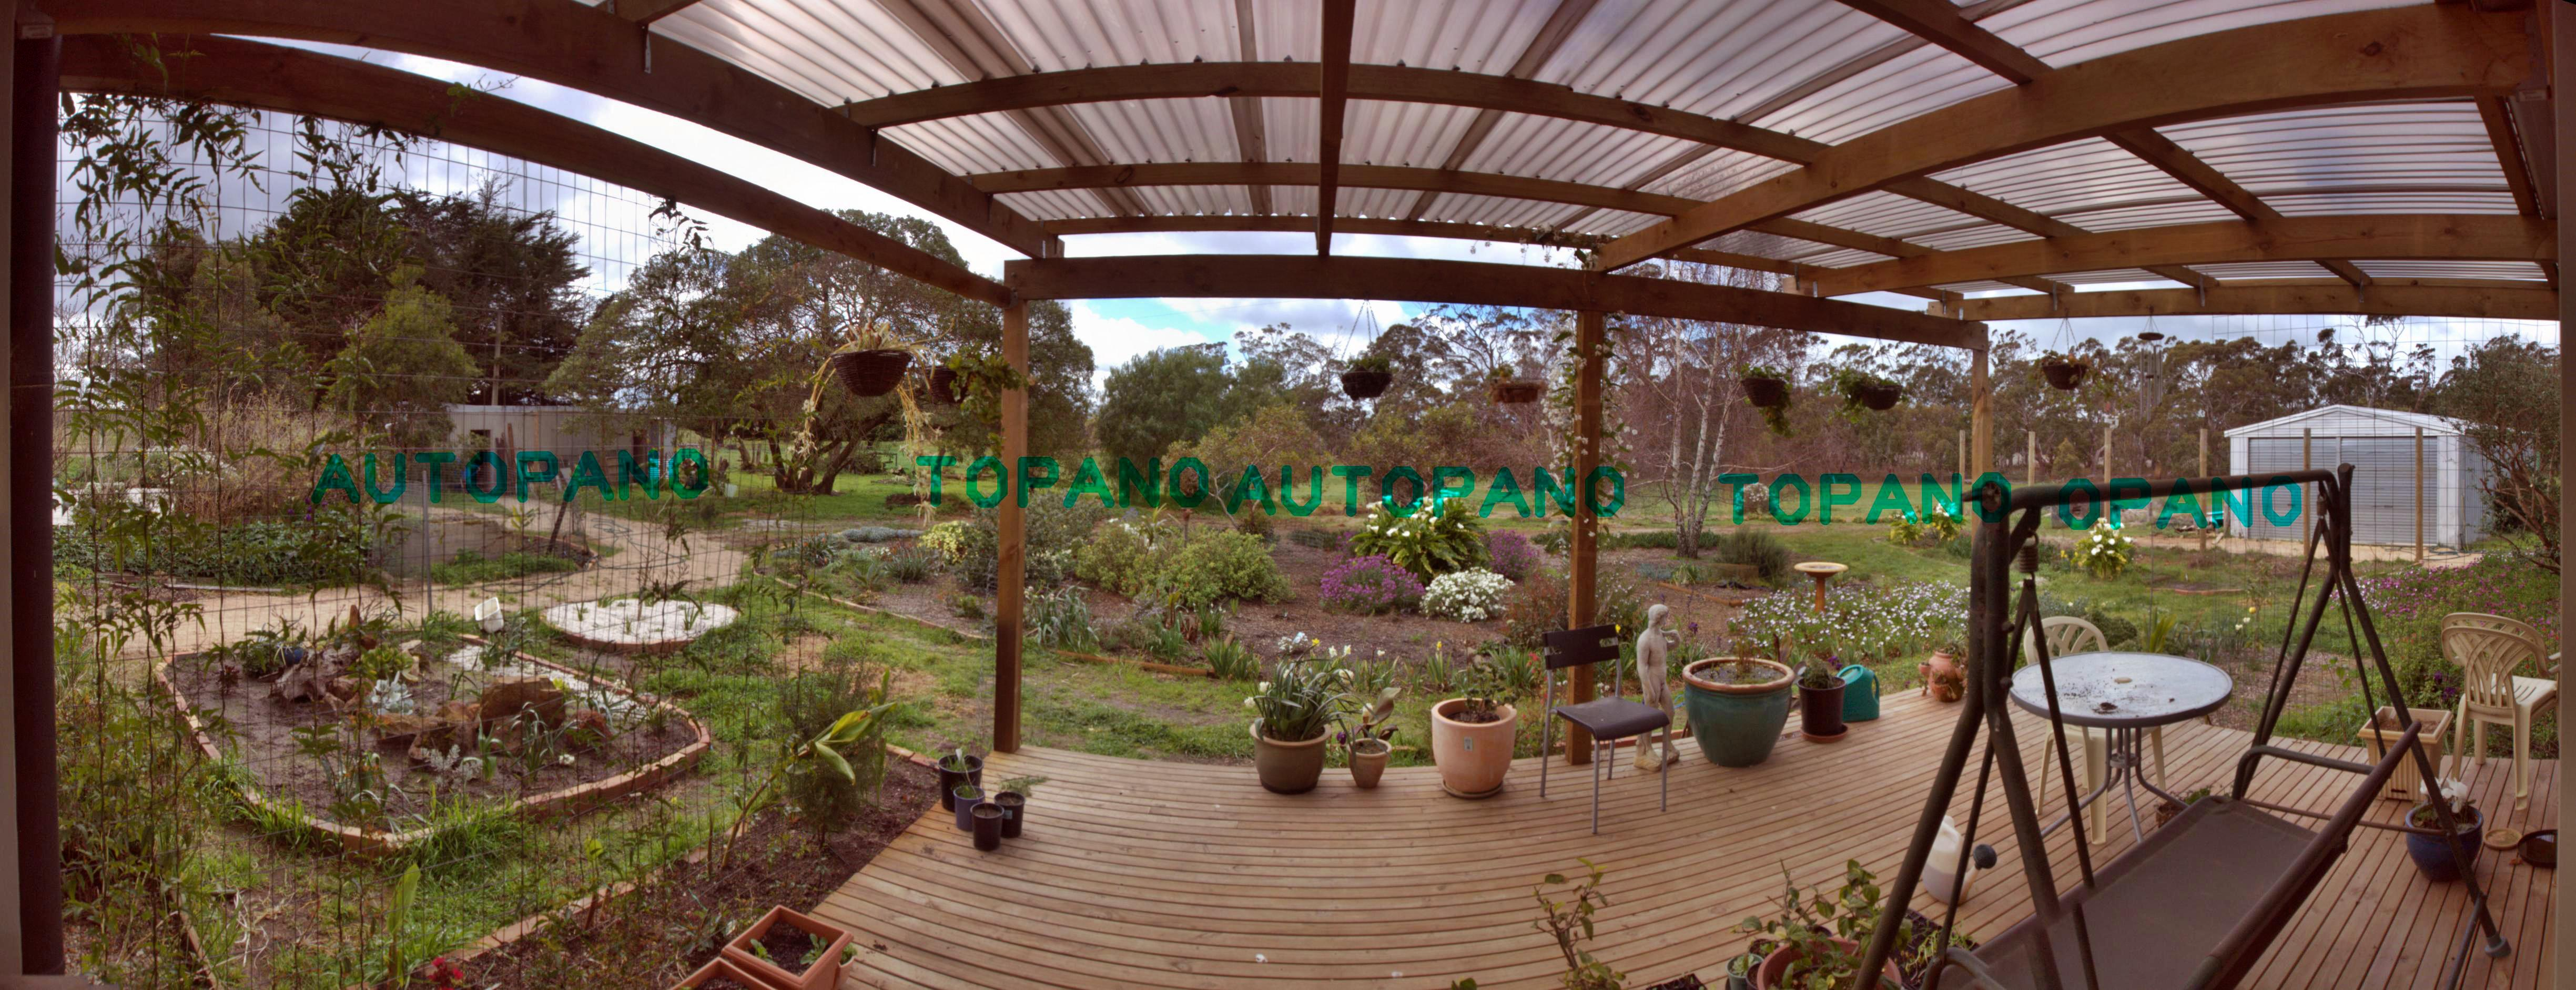 verandah-panorama-kolor-optimized.jpeg